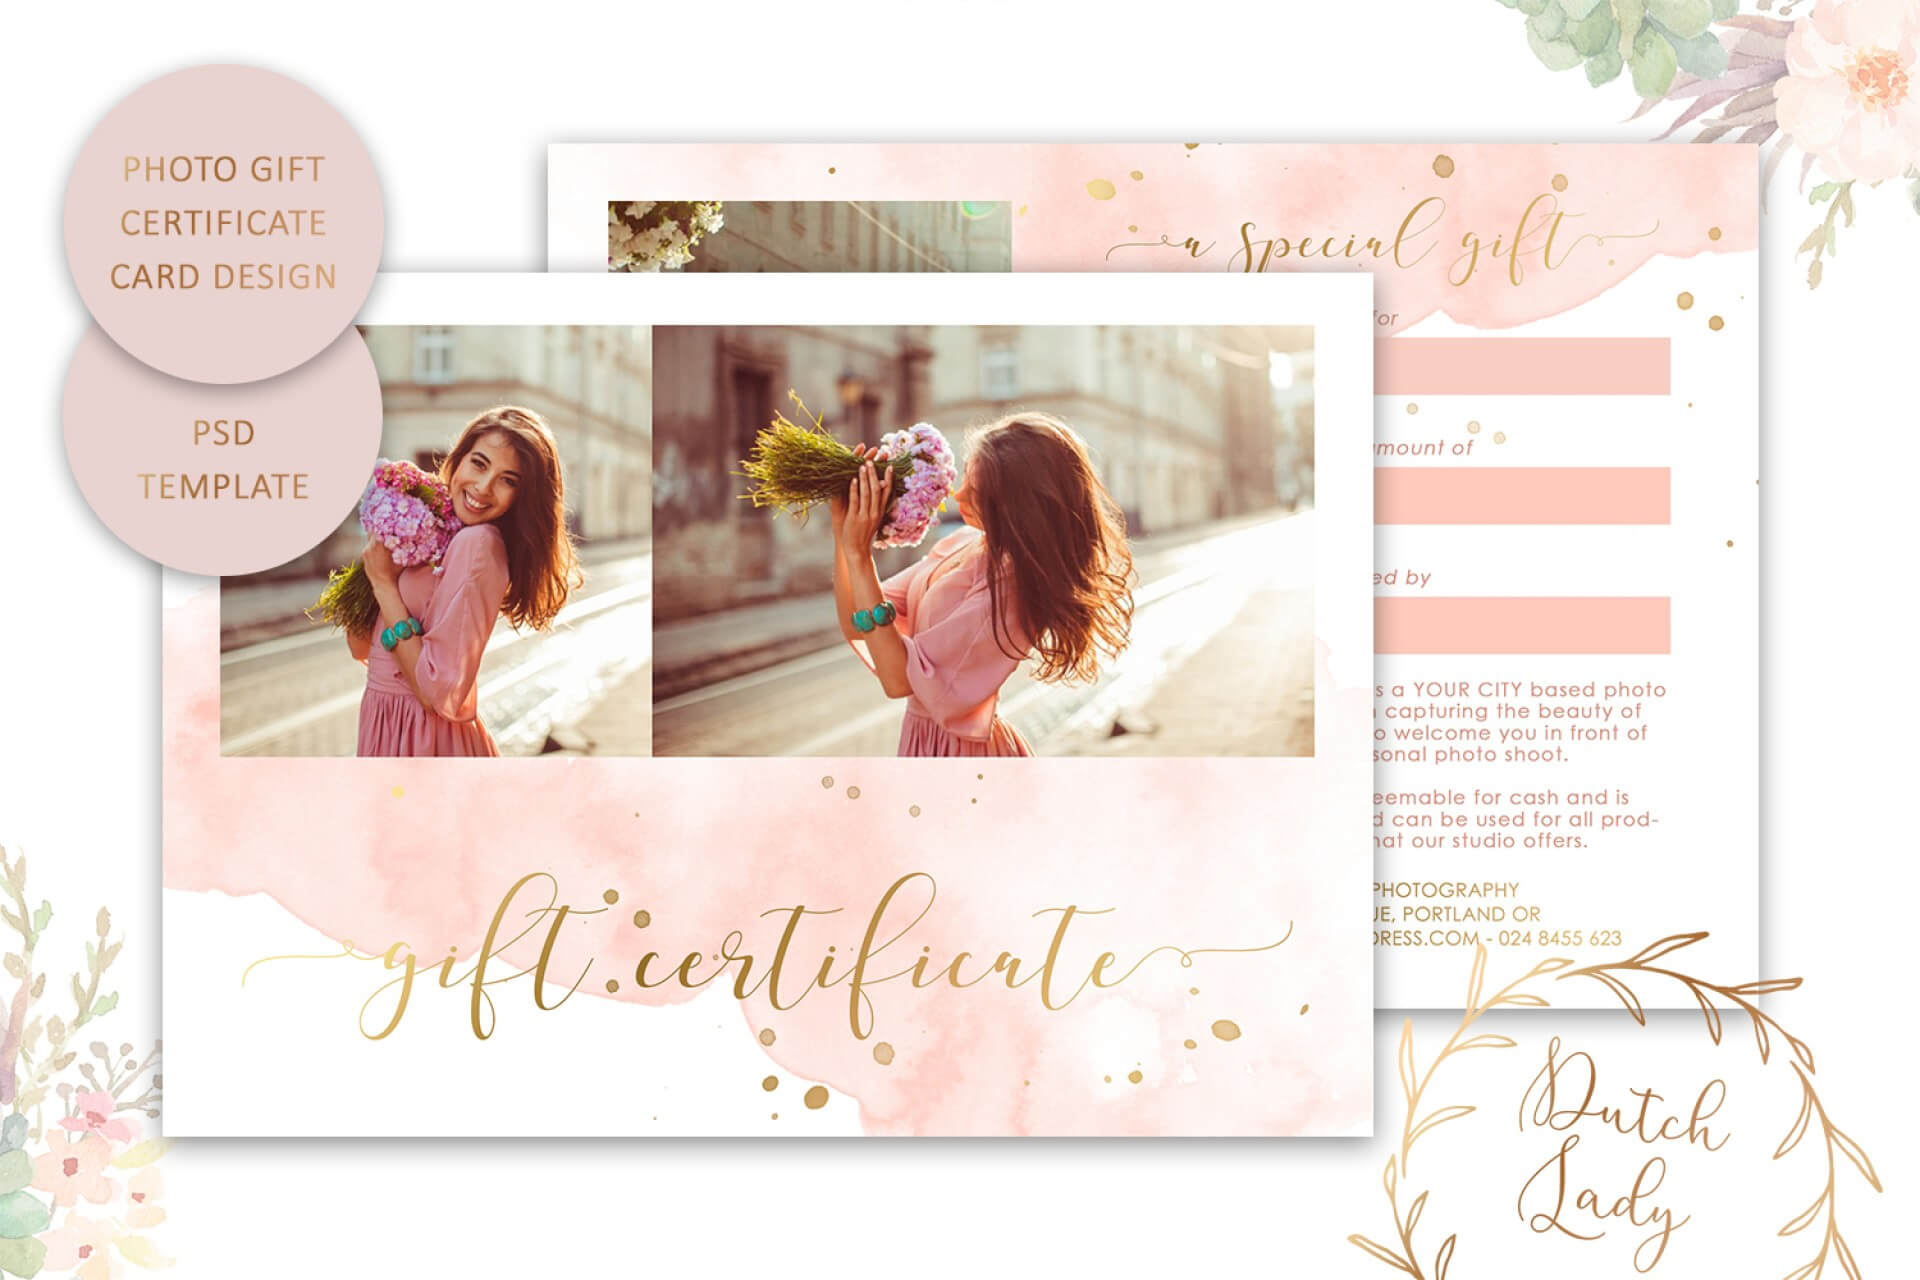 019 Photography Session Gift Certificate Template Ideas For Free Photography Gift Certificate Template